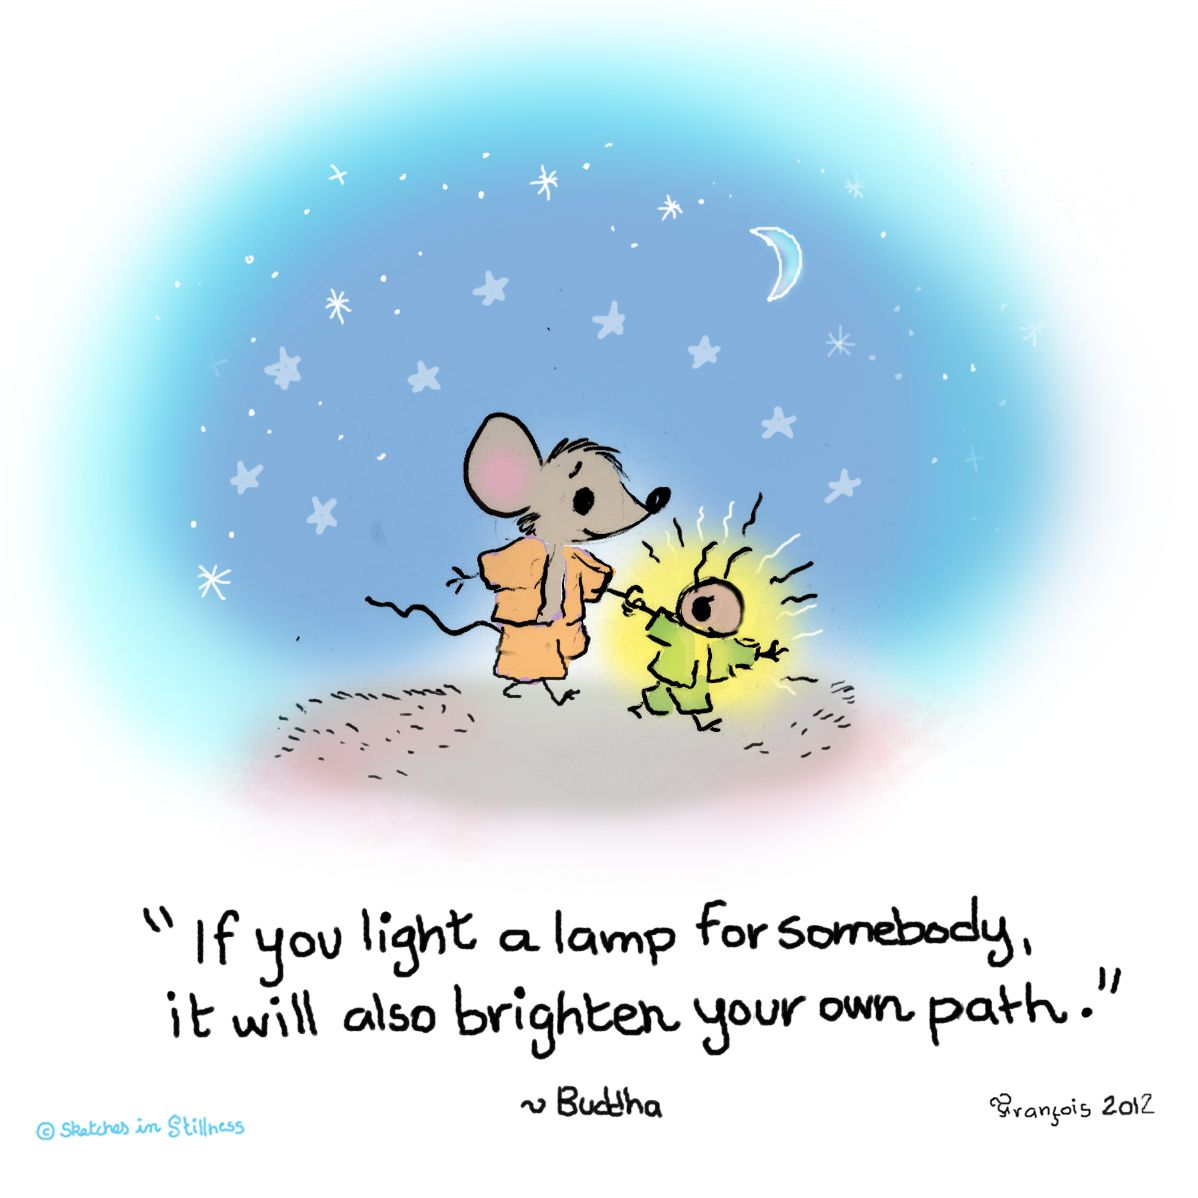 """""""If you light a lamp for somebody, it will also brighten your own path.""""~Buddha"""